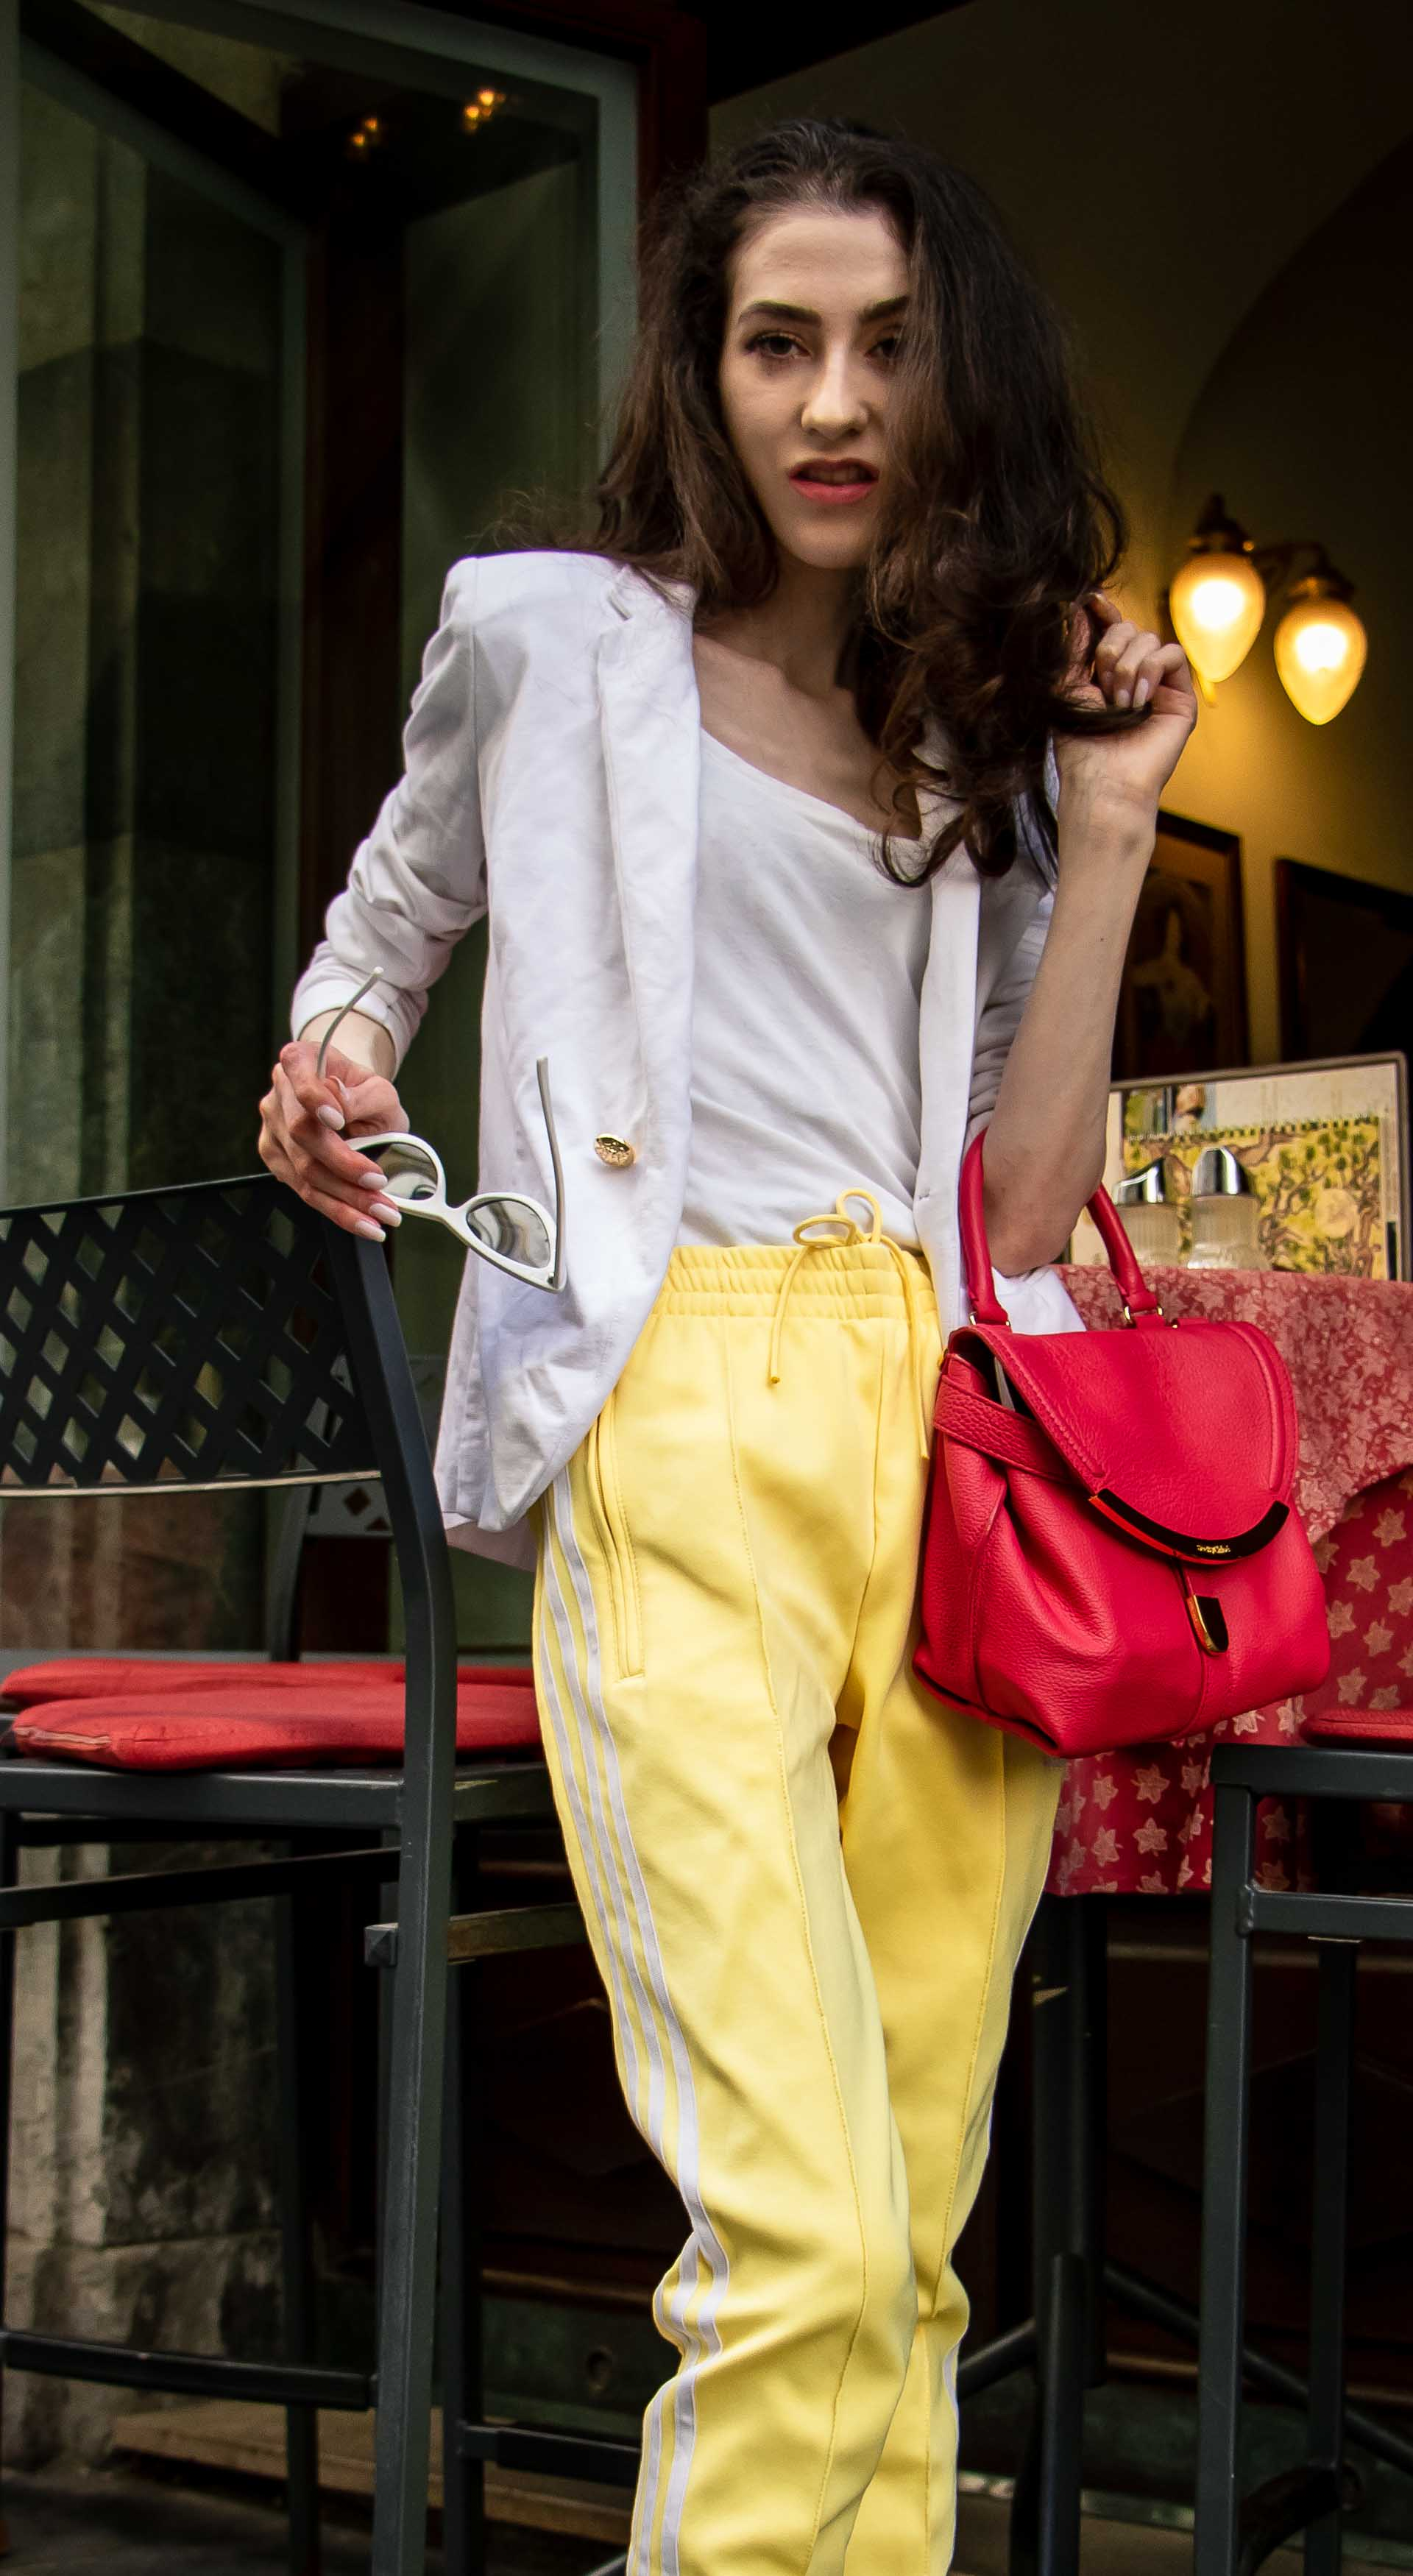 Veronika Lipar Fashion Editor of Brunette from Wall Street wearing chic casual white blazer, white H&M t-shirt, yellow Addidas track pants, See by Chloé pink top handle bag, Adam Selman x Le Specs white cat eye Lolita sunglasses, pink blush Gianvito Rossi plexi pumps sitting on bar stool on the street